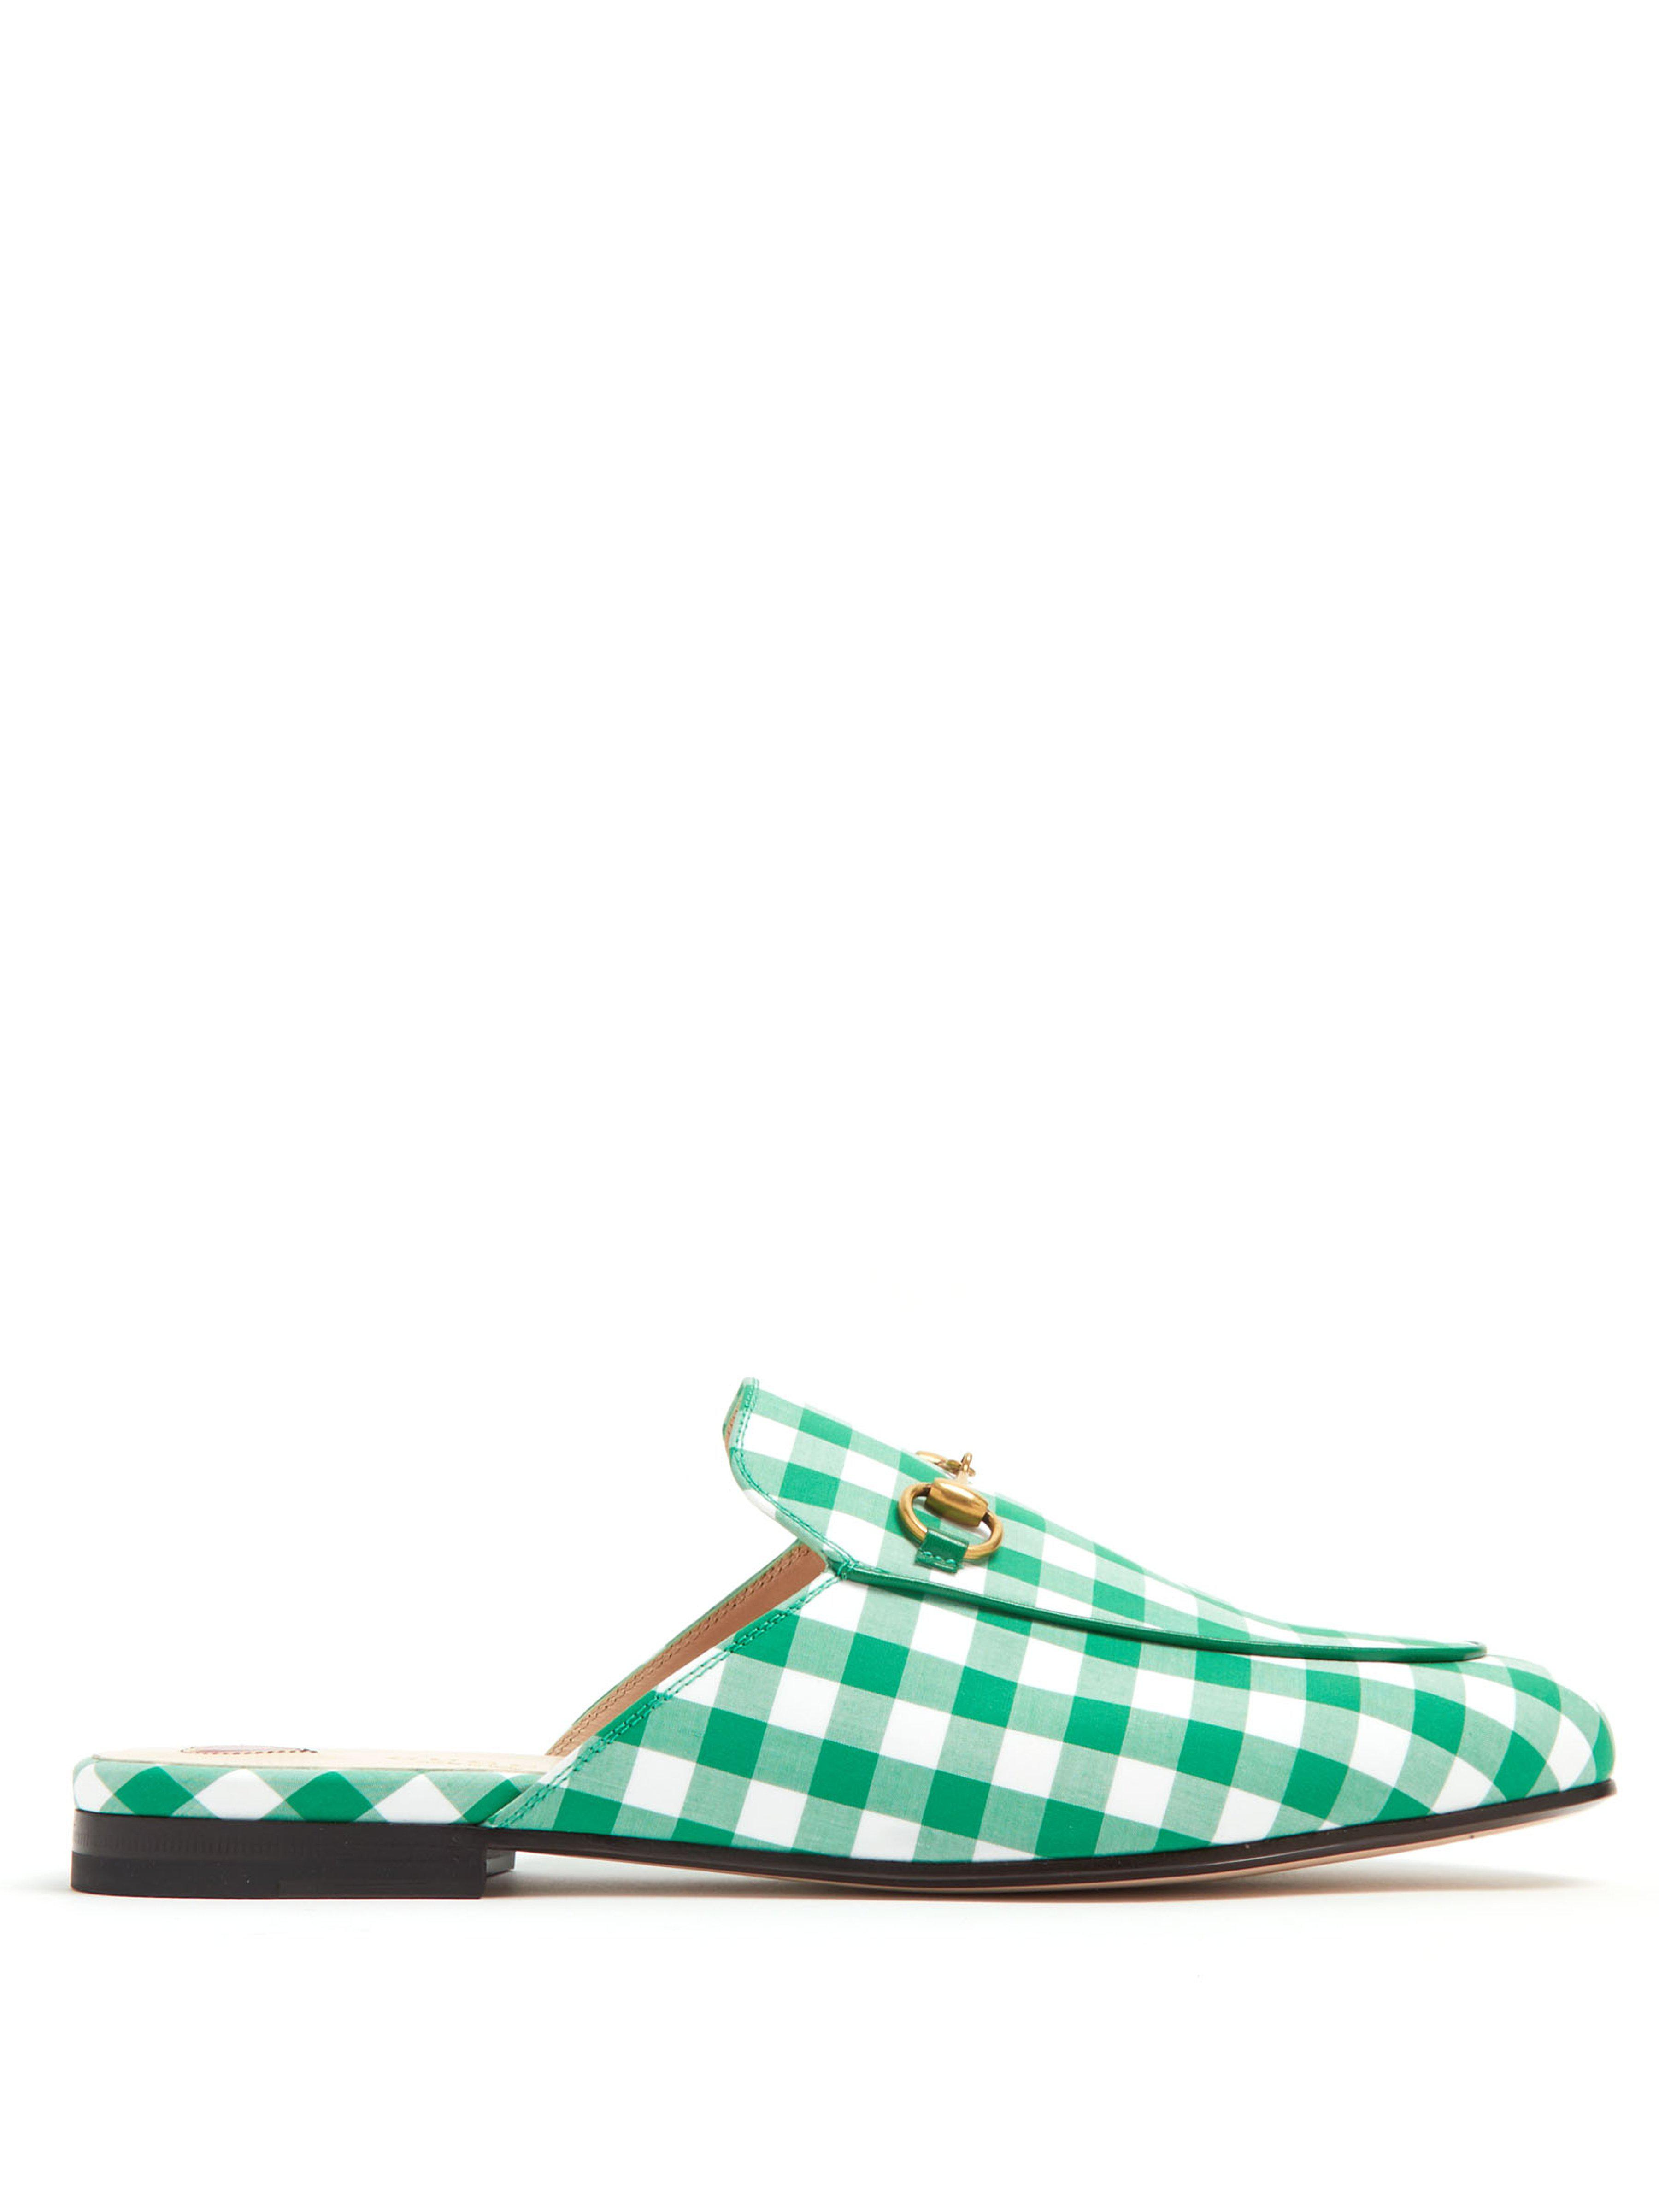 0c42ed7e9af Gucci Princetown Gingham Backless Loafers in Green - Lyst